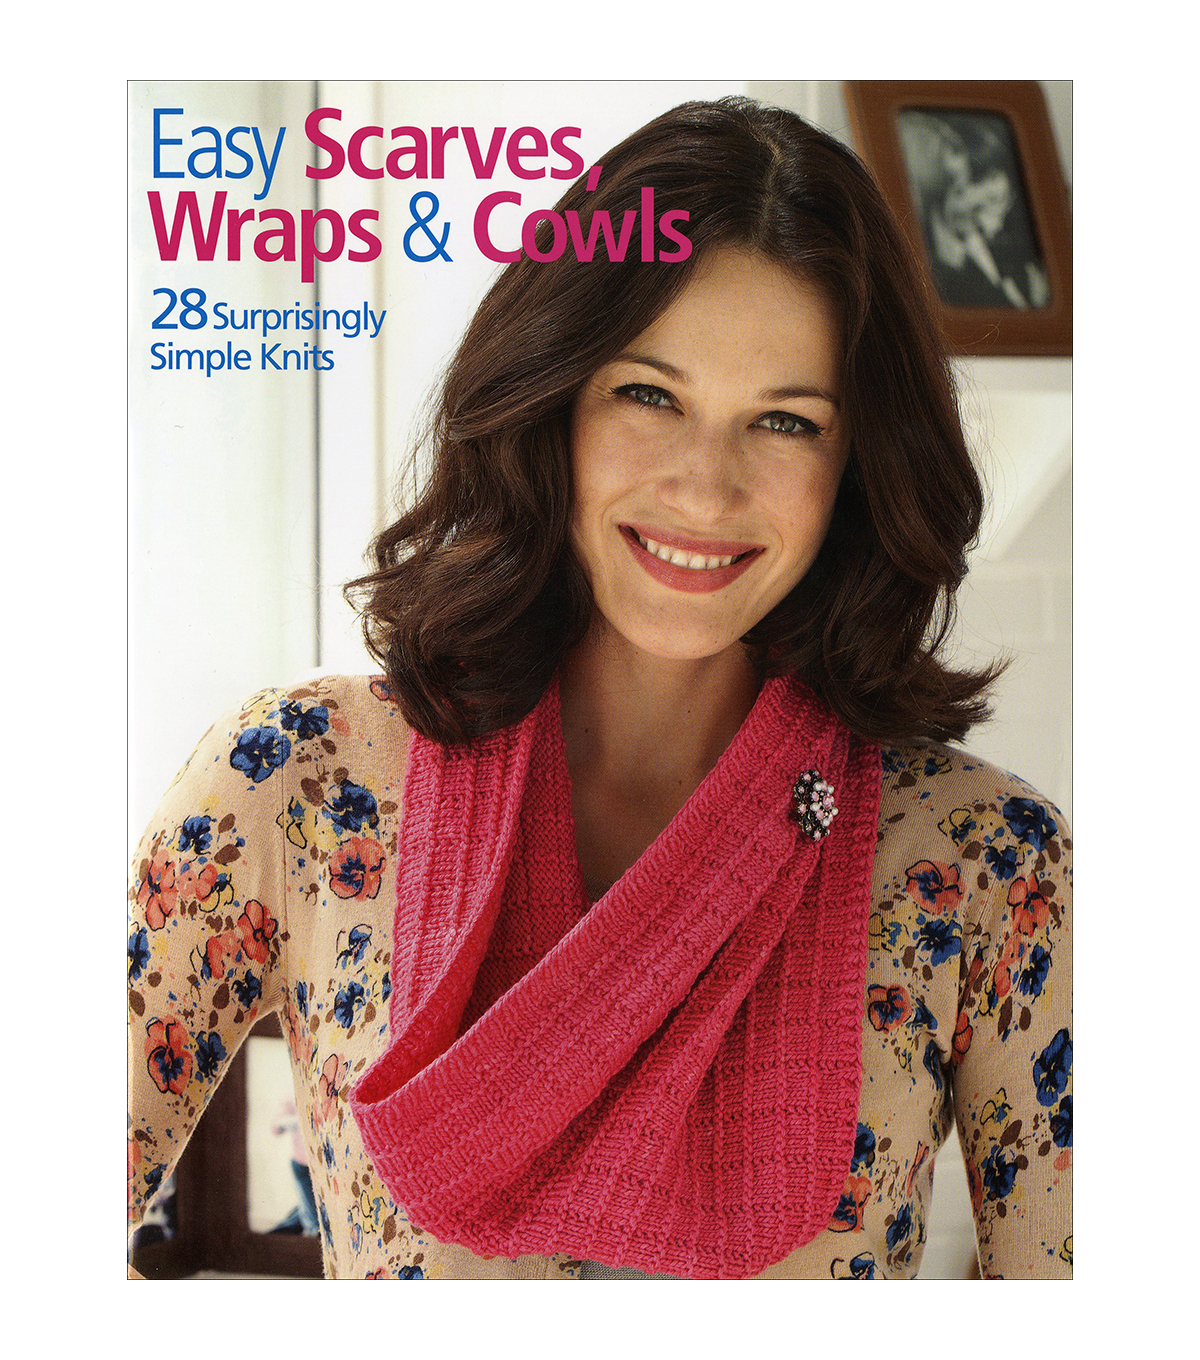 Easy Scarves, Wraps & Cowls Book